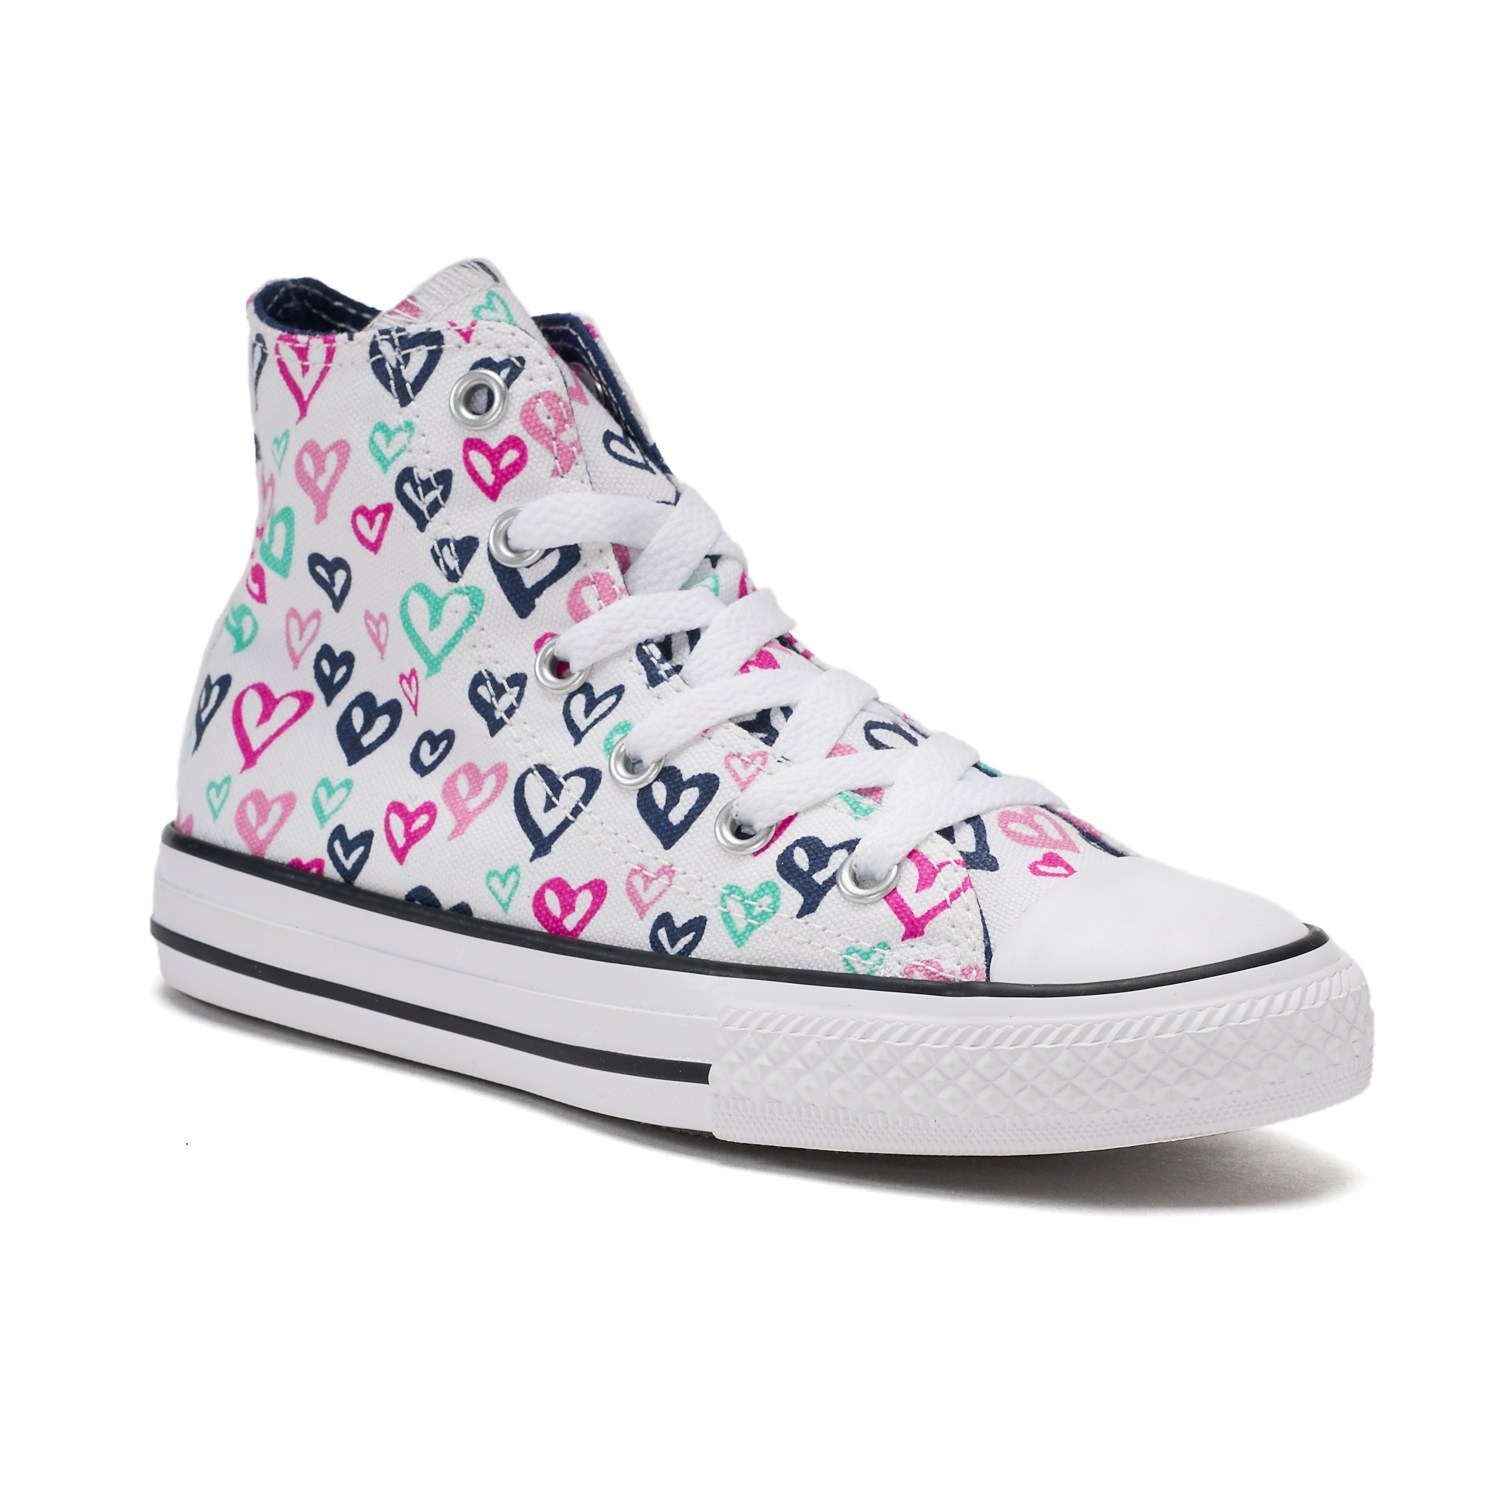 Converse for Girls – Shoes are Designed Just for Them!